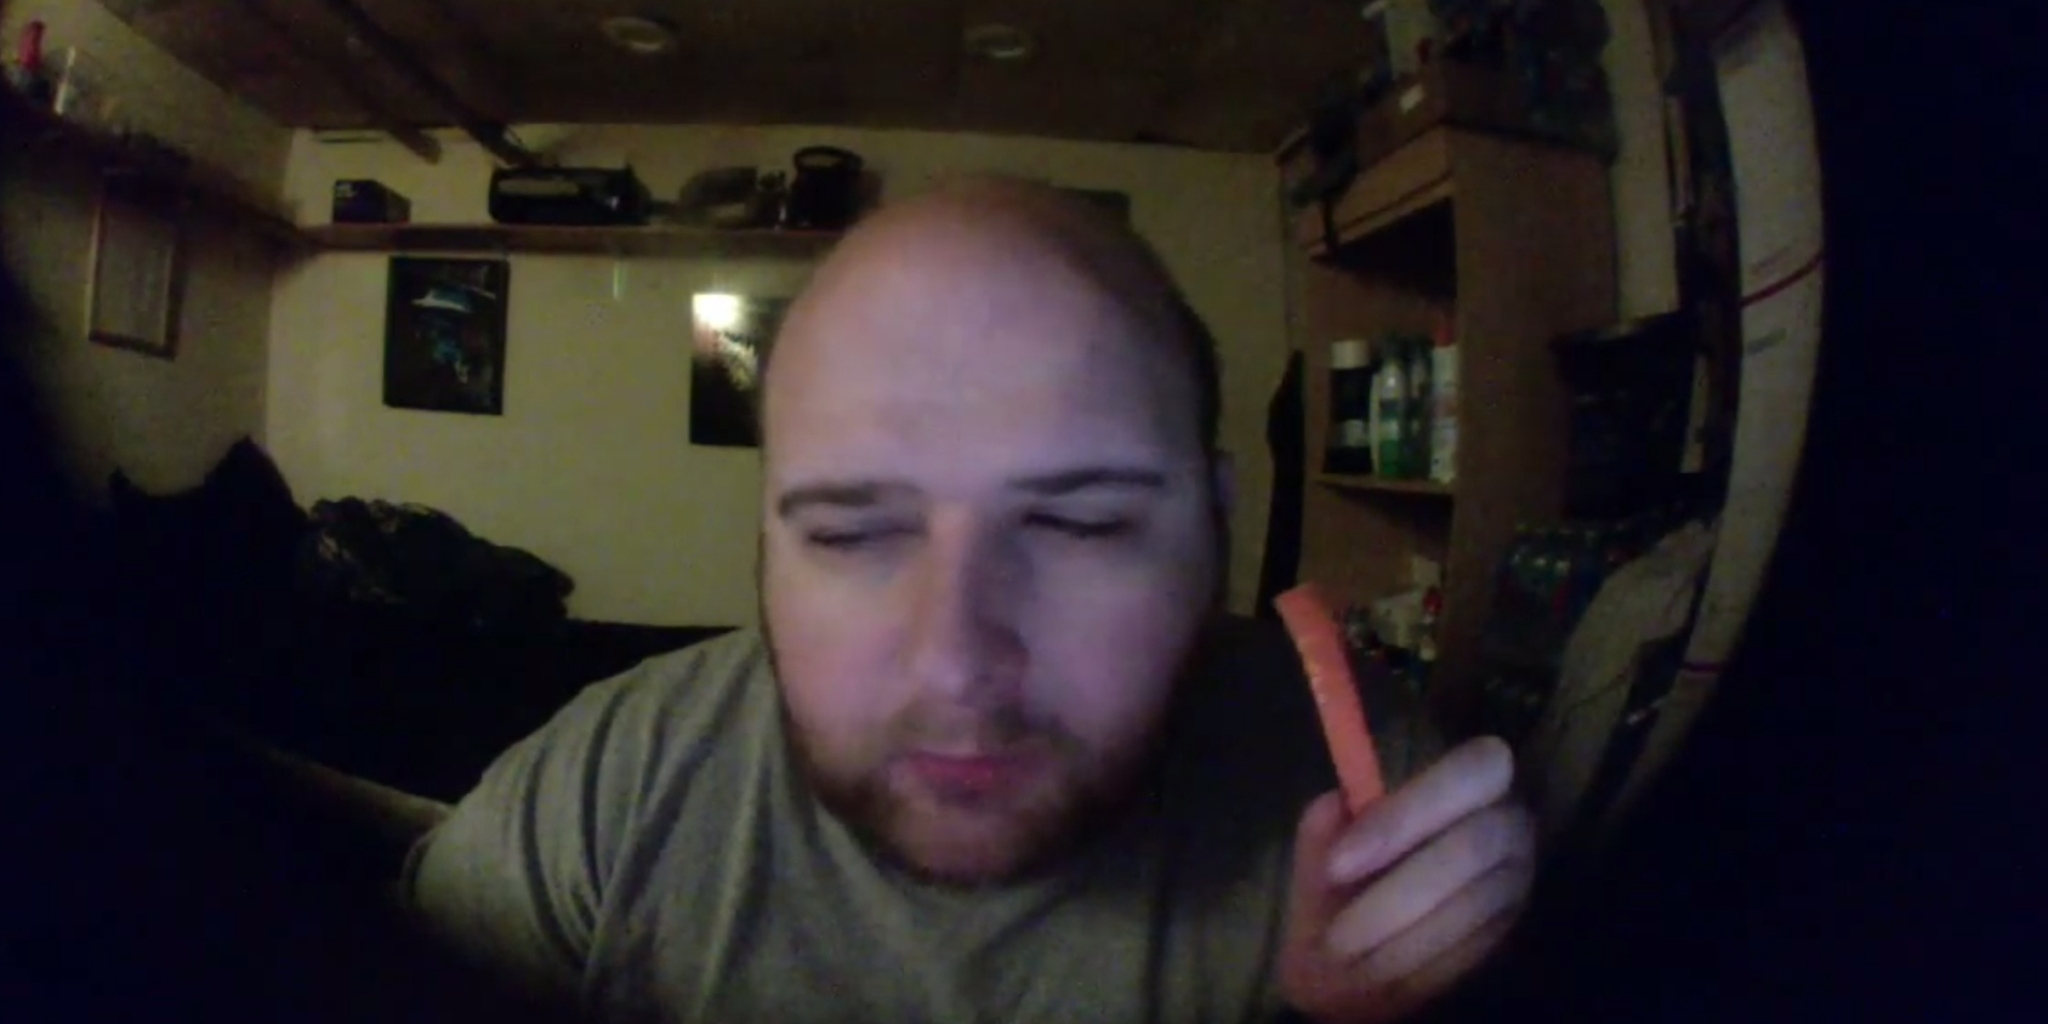 Jon Eats Carrots webseries